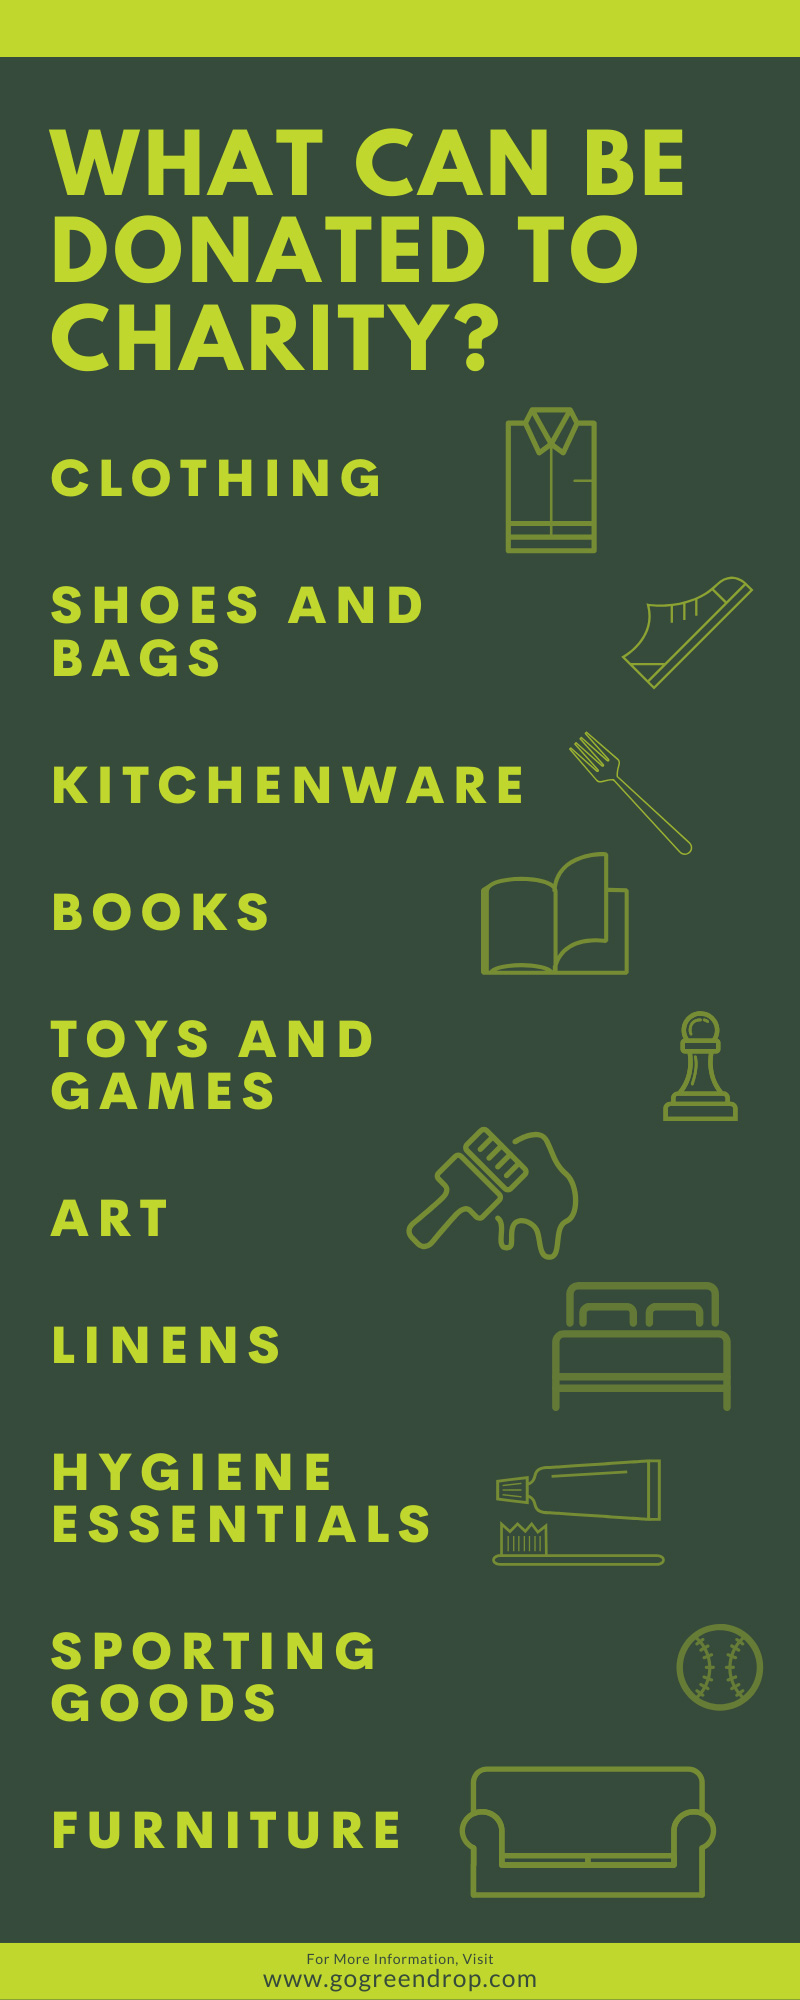 What Can Be Donated to Charity? infographic